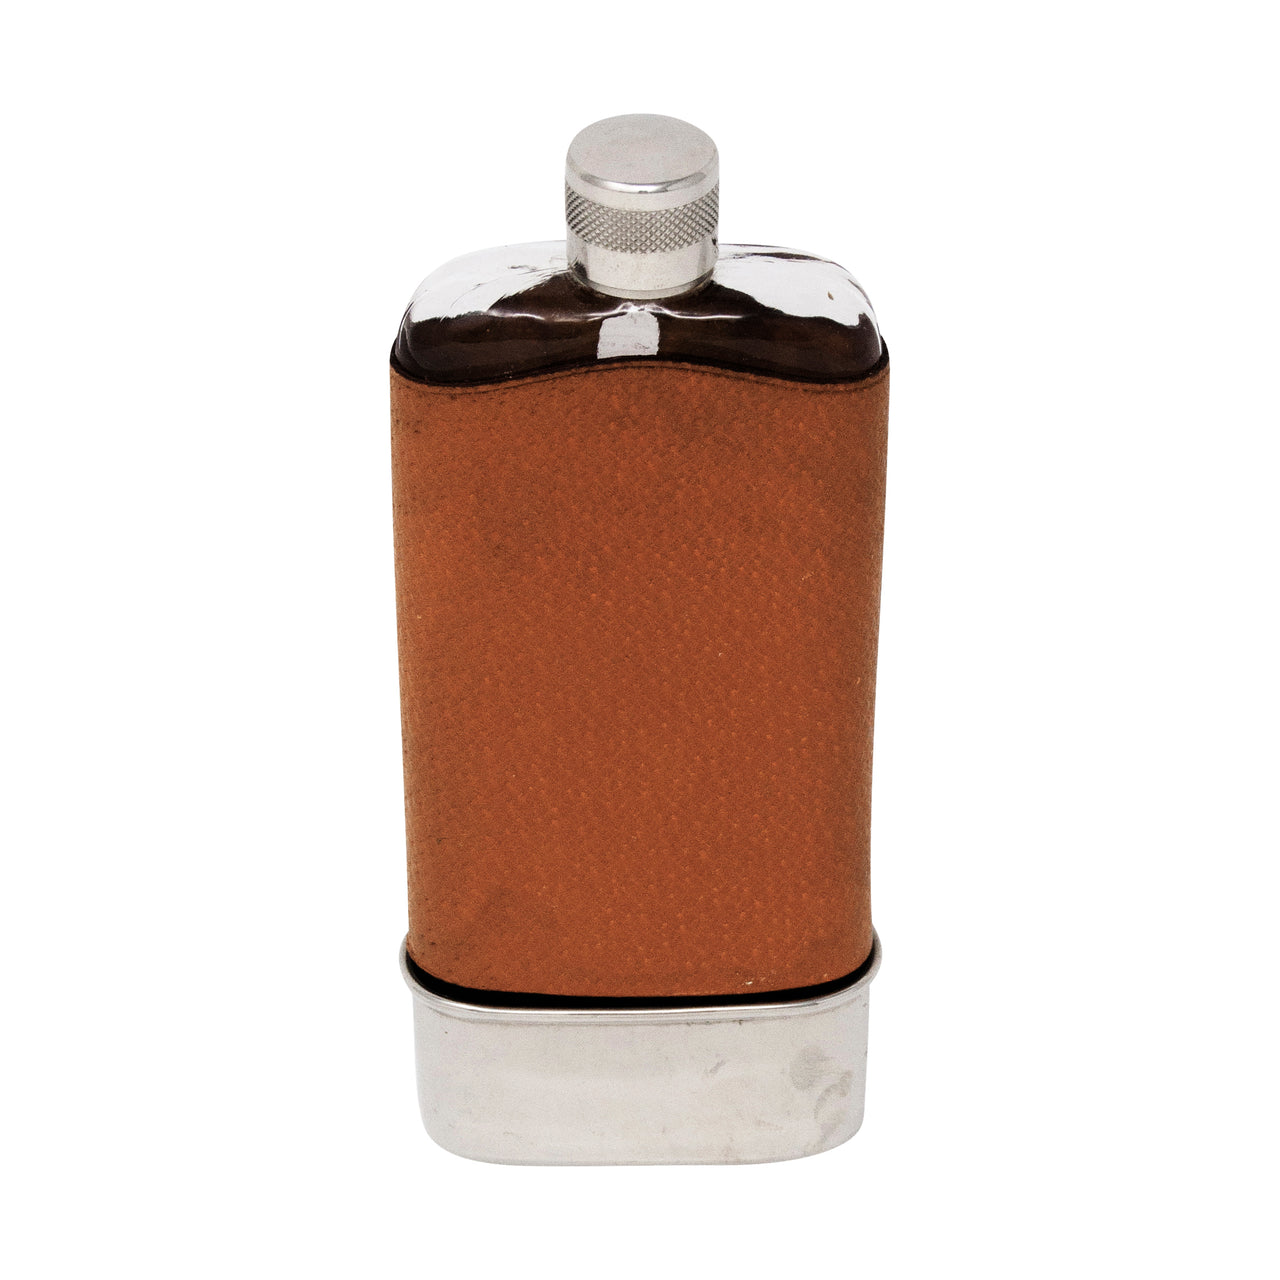 Vintage Leather Wrapped Glass 'Thirsty' Flask & Cup | The Hour